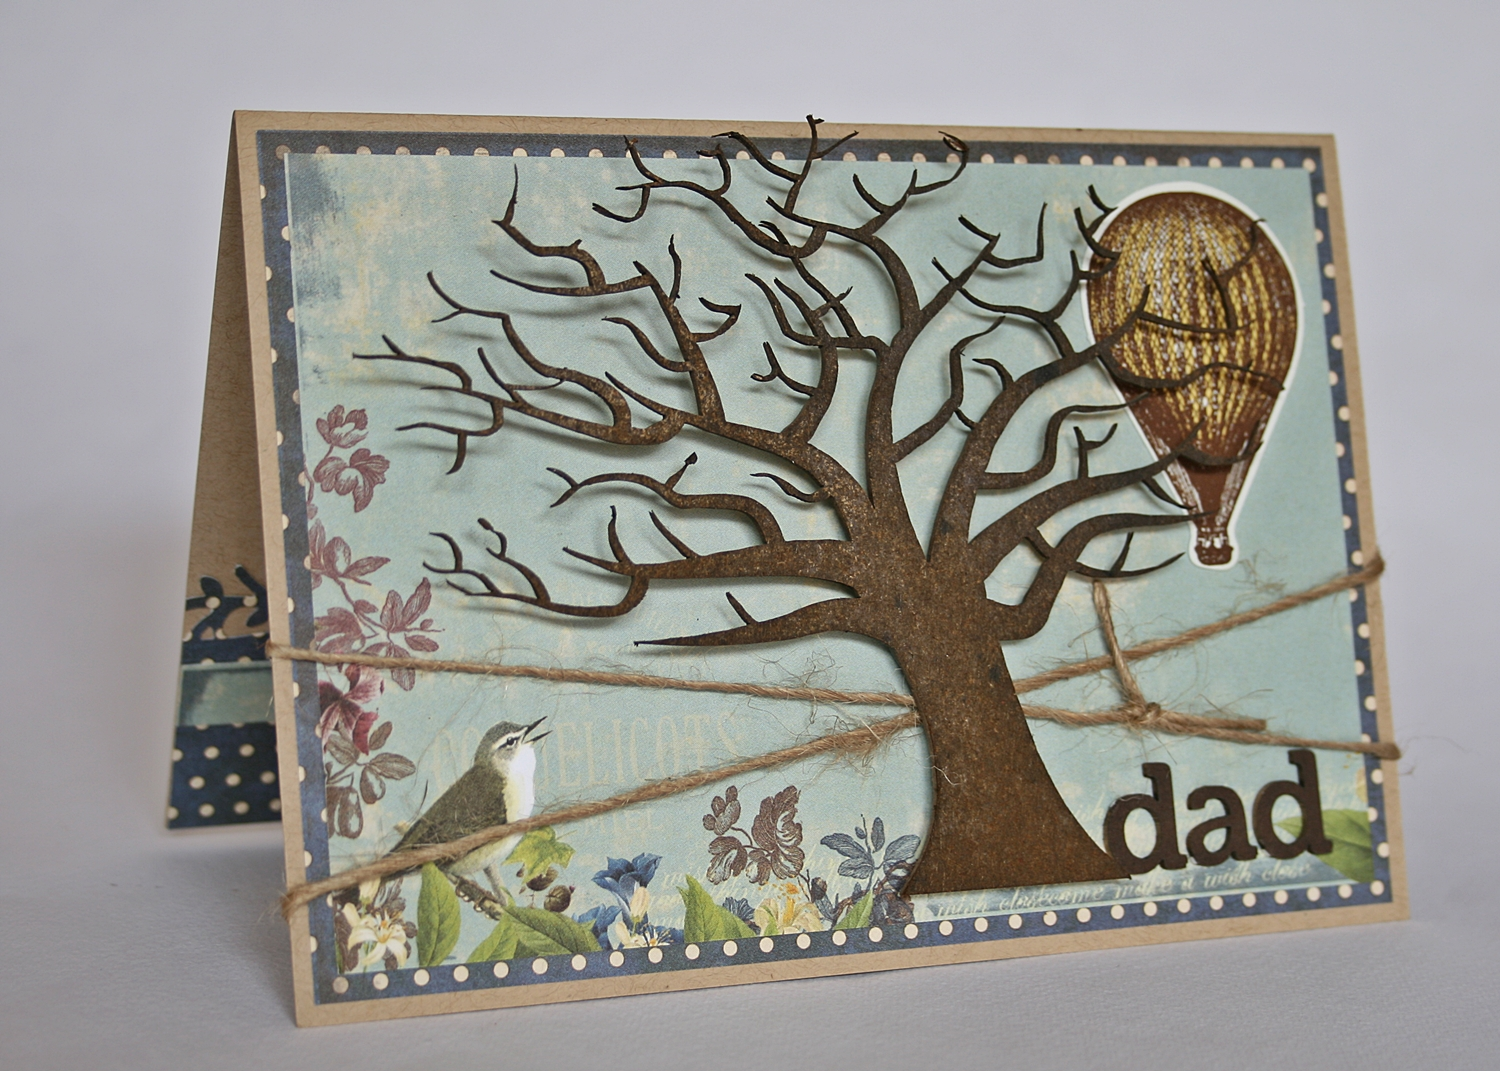 the tamarisk a birthday card for dad